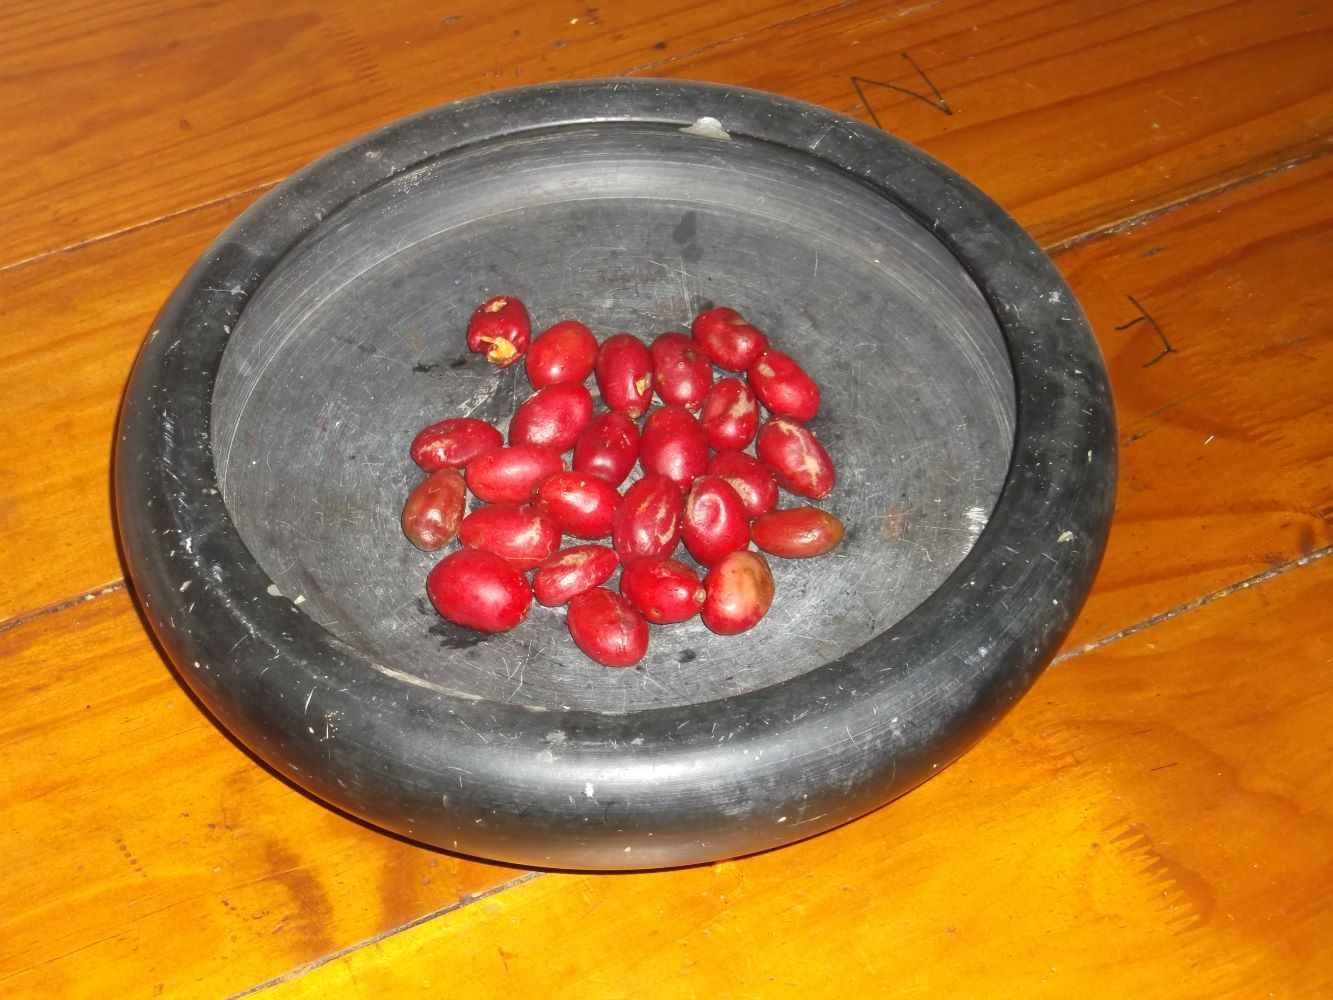 The fruit of the Umgwenyobomvu are incredibly red